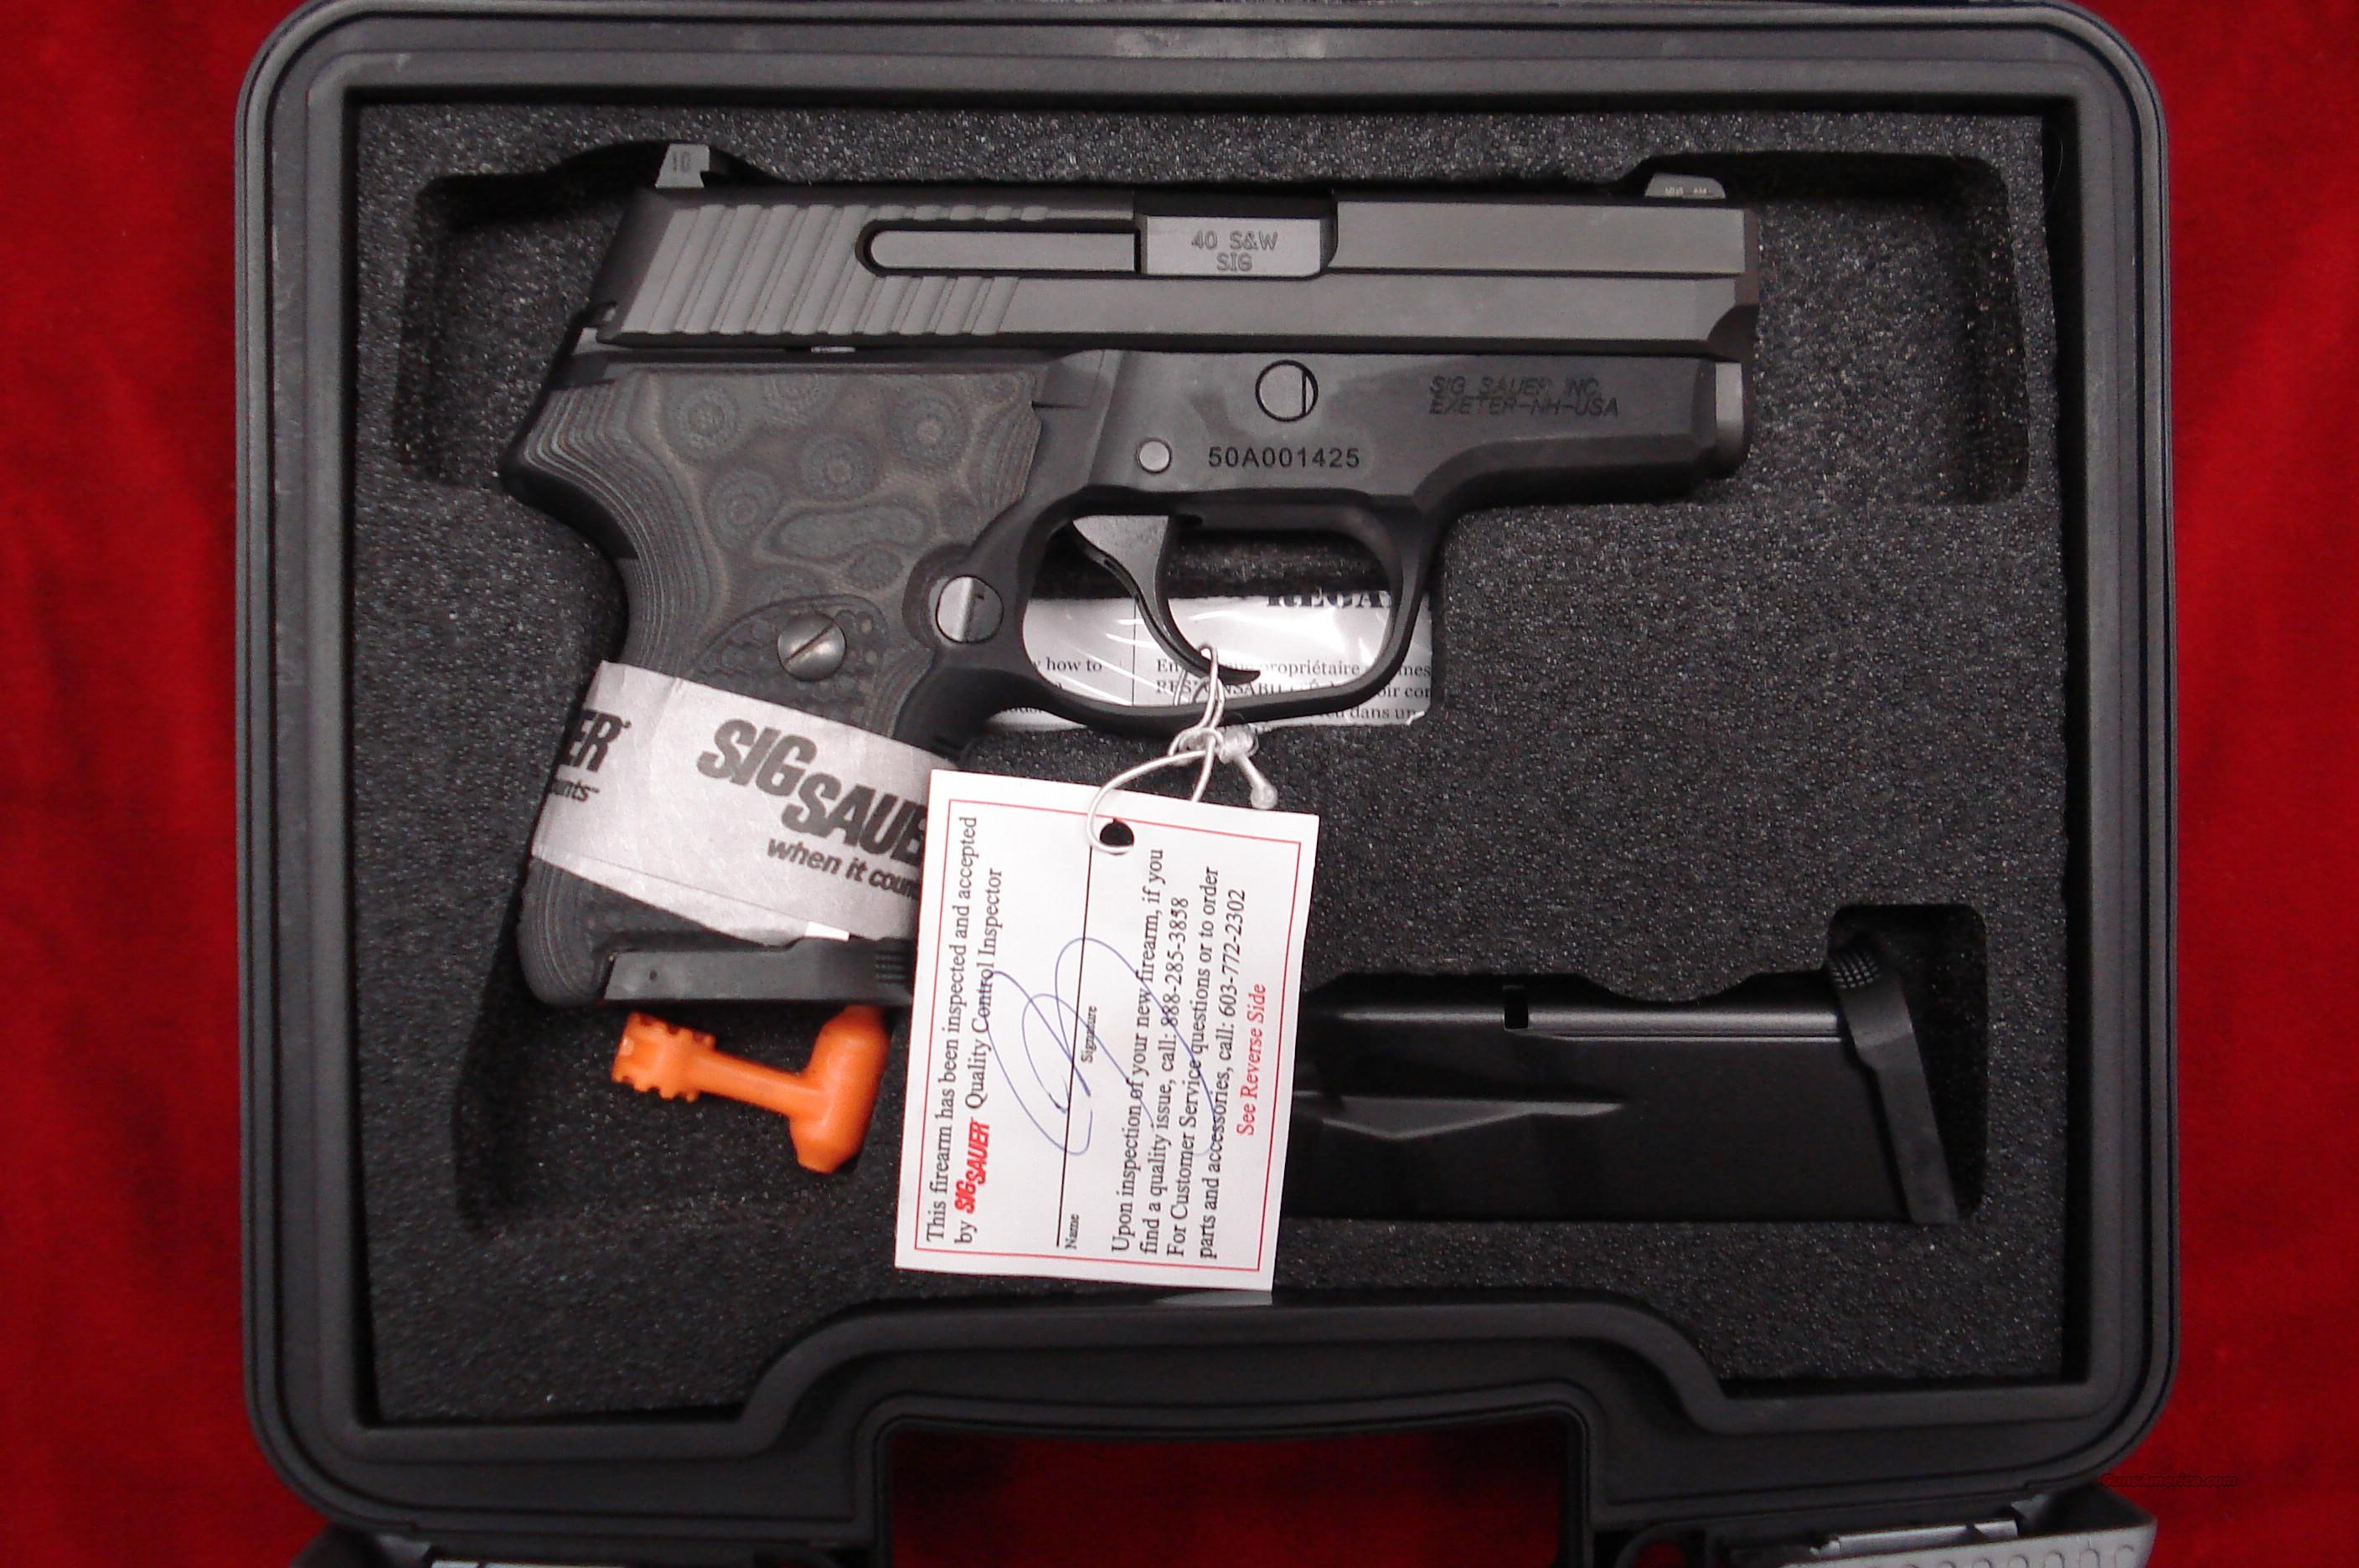 SIG-SAUER P224 XTM 40SW  W/NIGHT SIGHTS NEW  Guns > Pistols > Sig - Sauer/Sigarms Pistols > Other